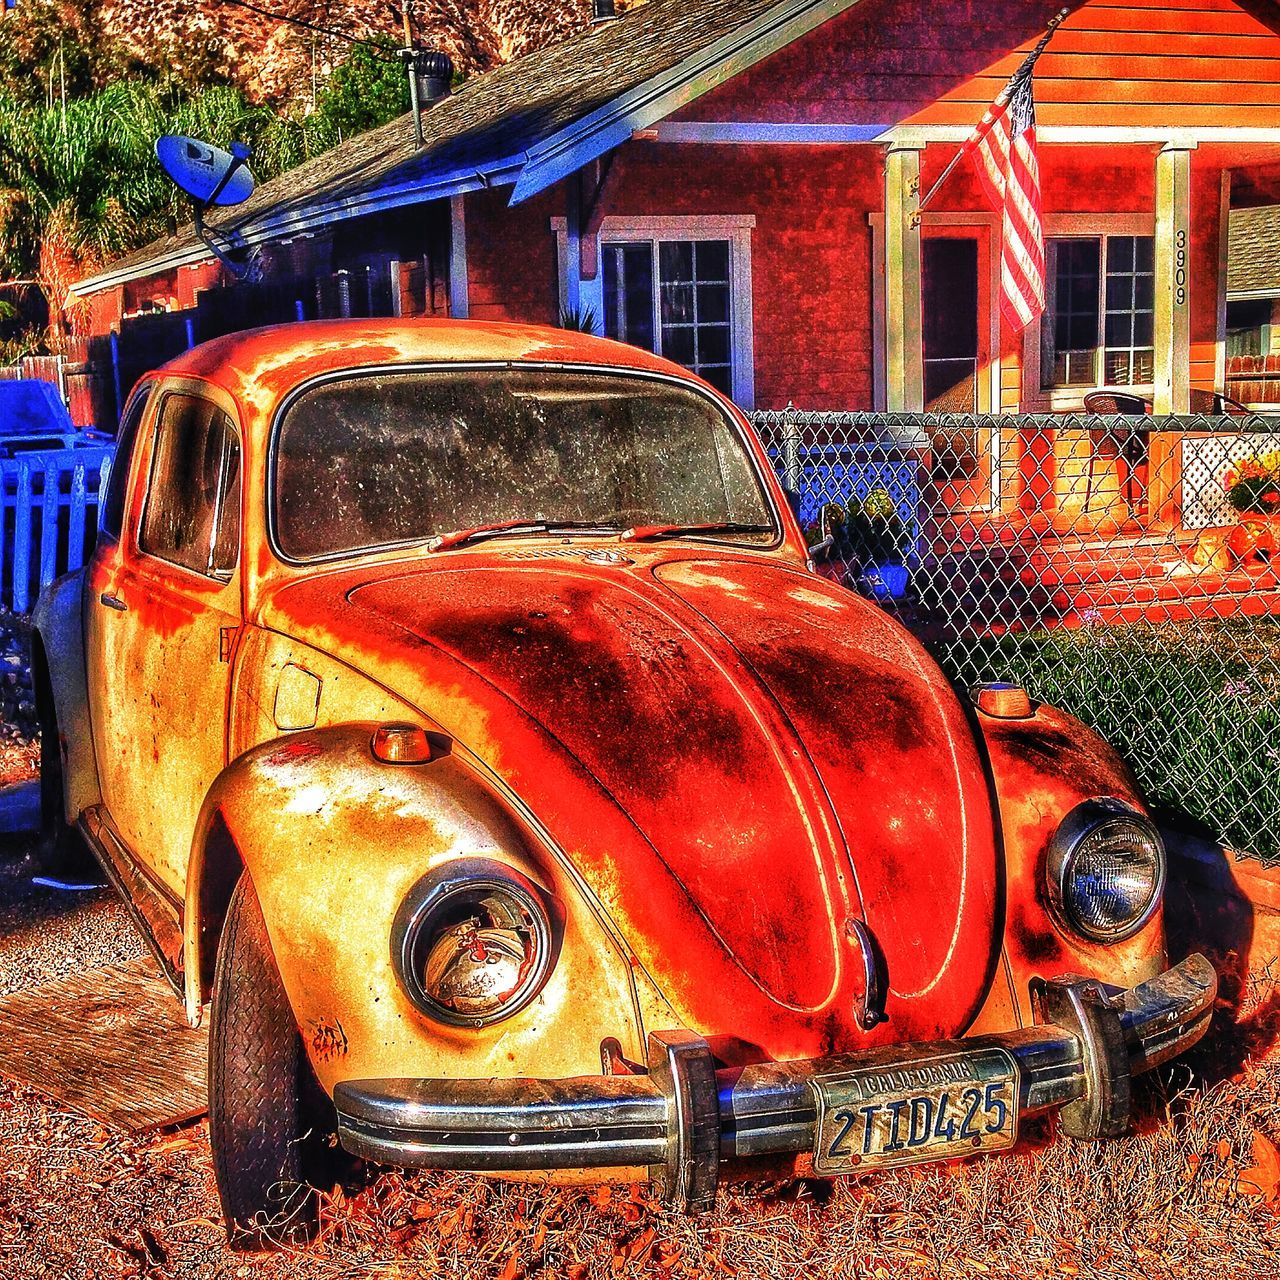 Vw Classic America Repairs Walking Around Elegance Everywhere From My Point Of View Taking Photos The Moment - 2014 EyeEm Awards Samys Camera Old Cars ❤